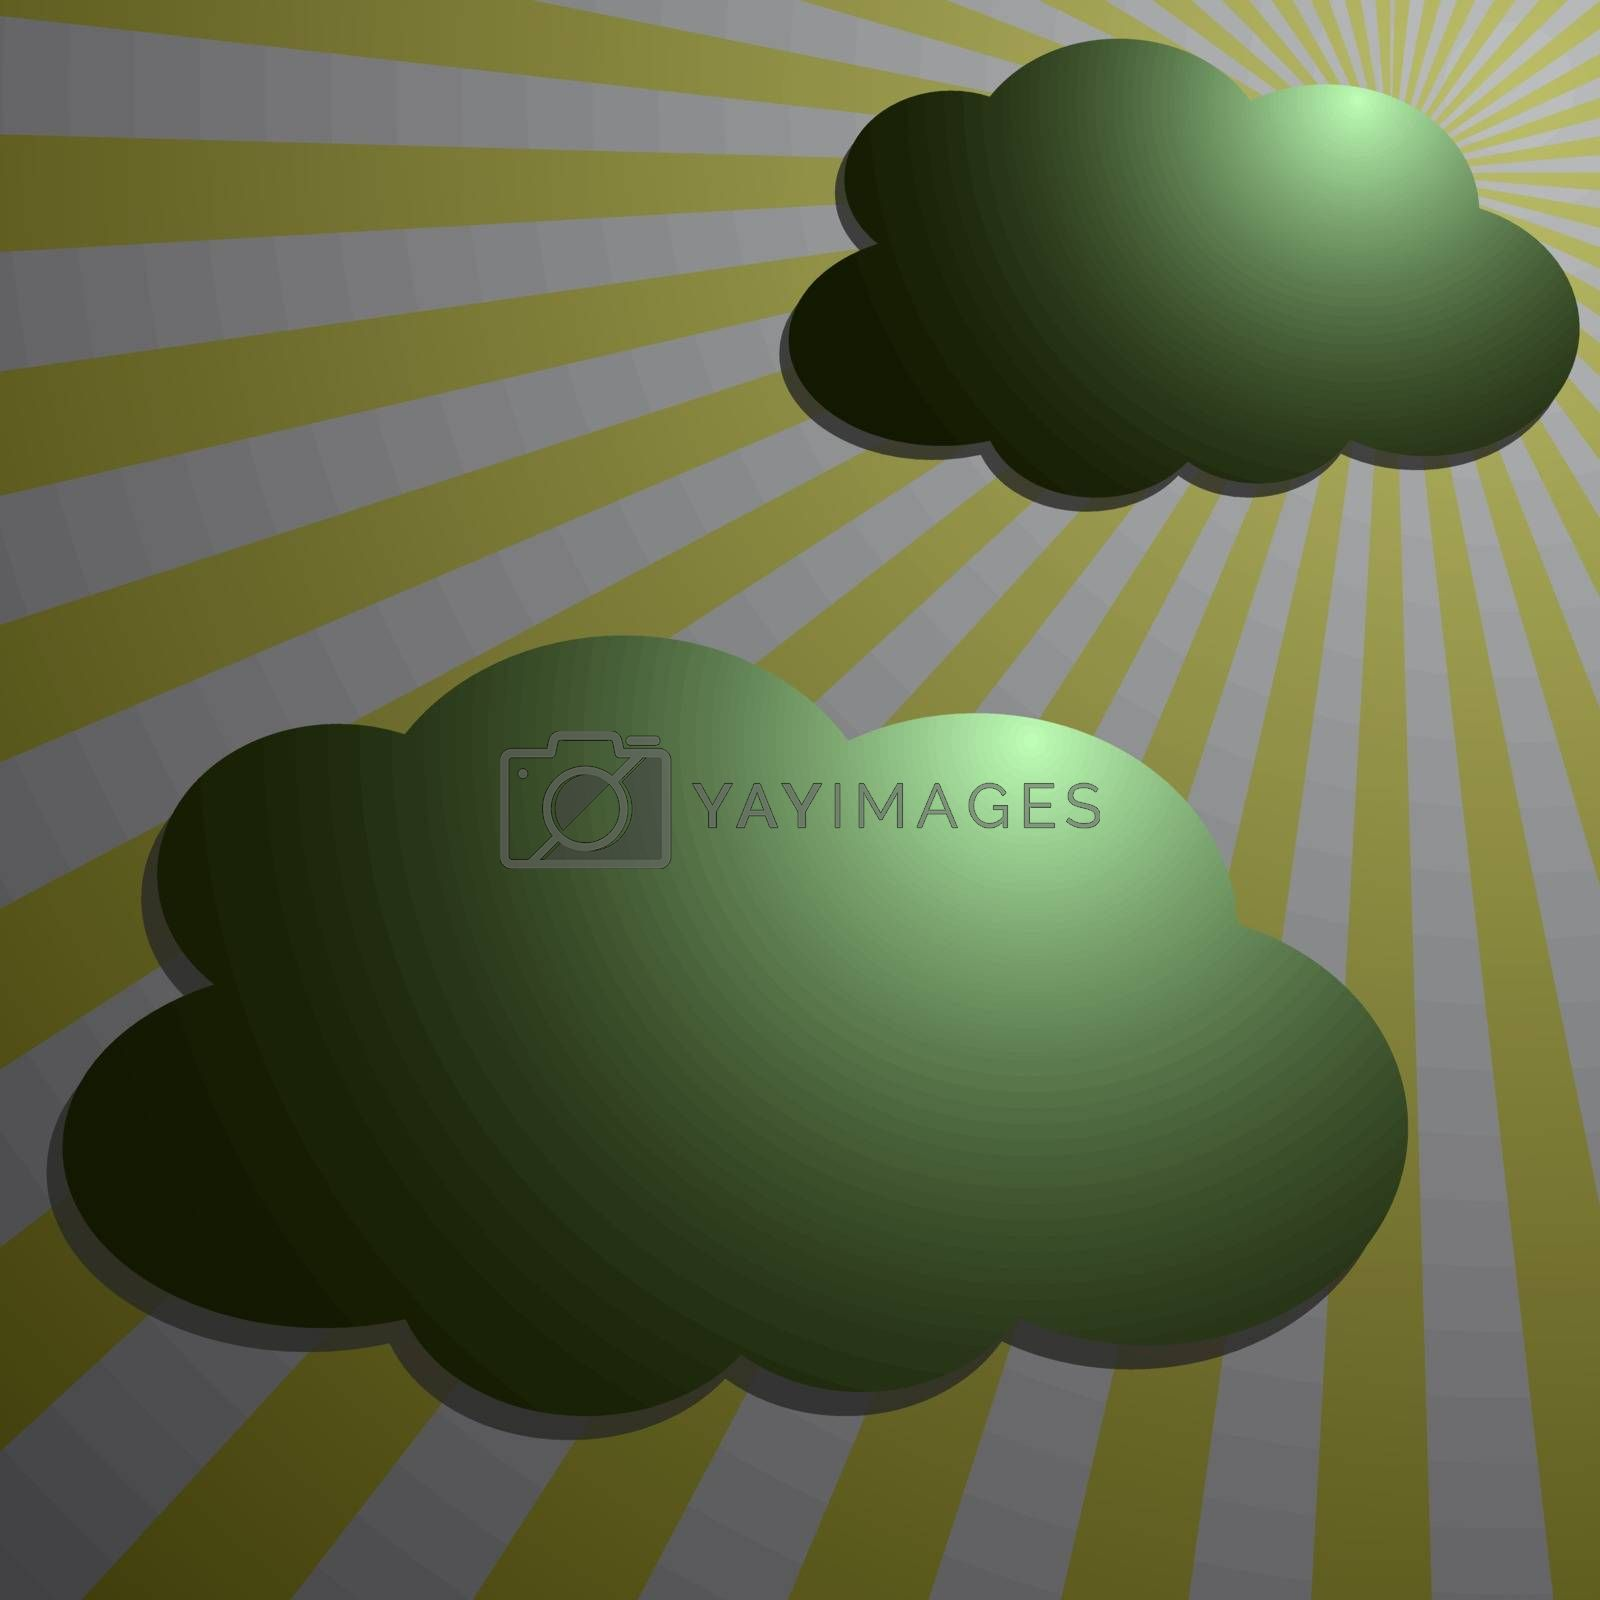 Clouds with the moon radial rays, vector illustration